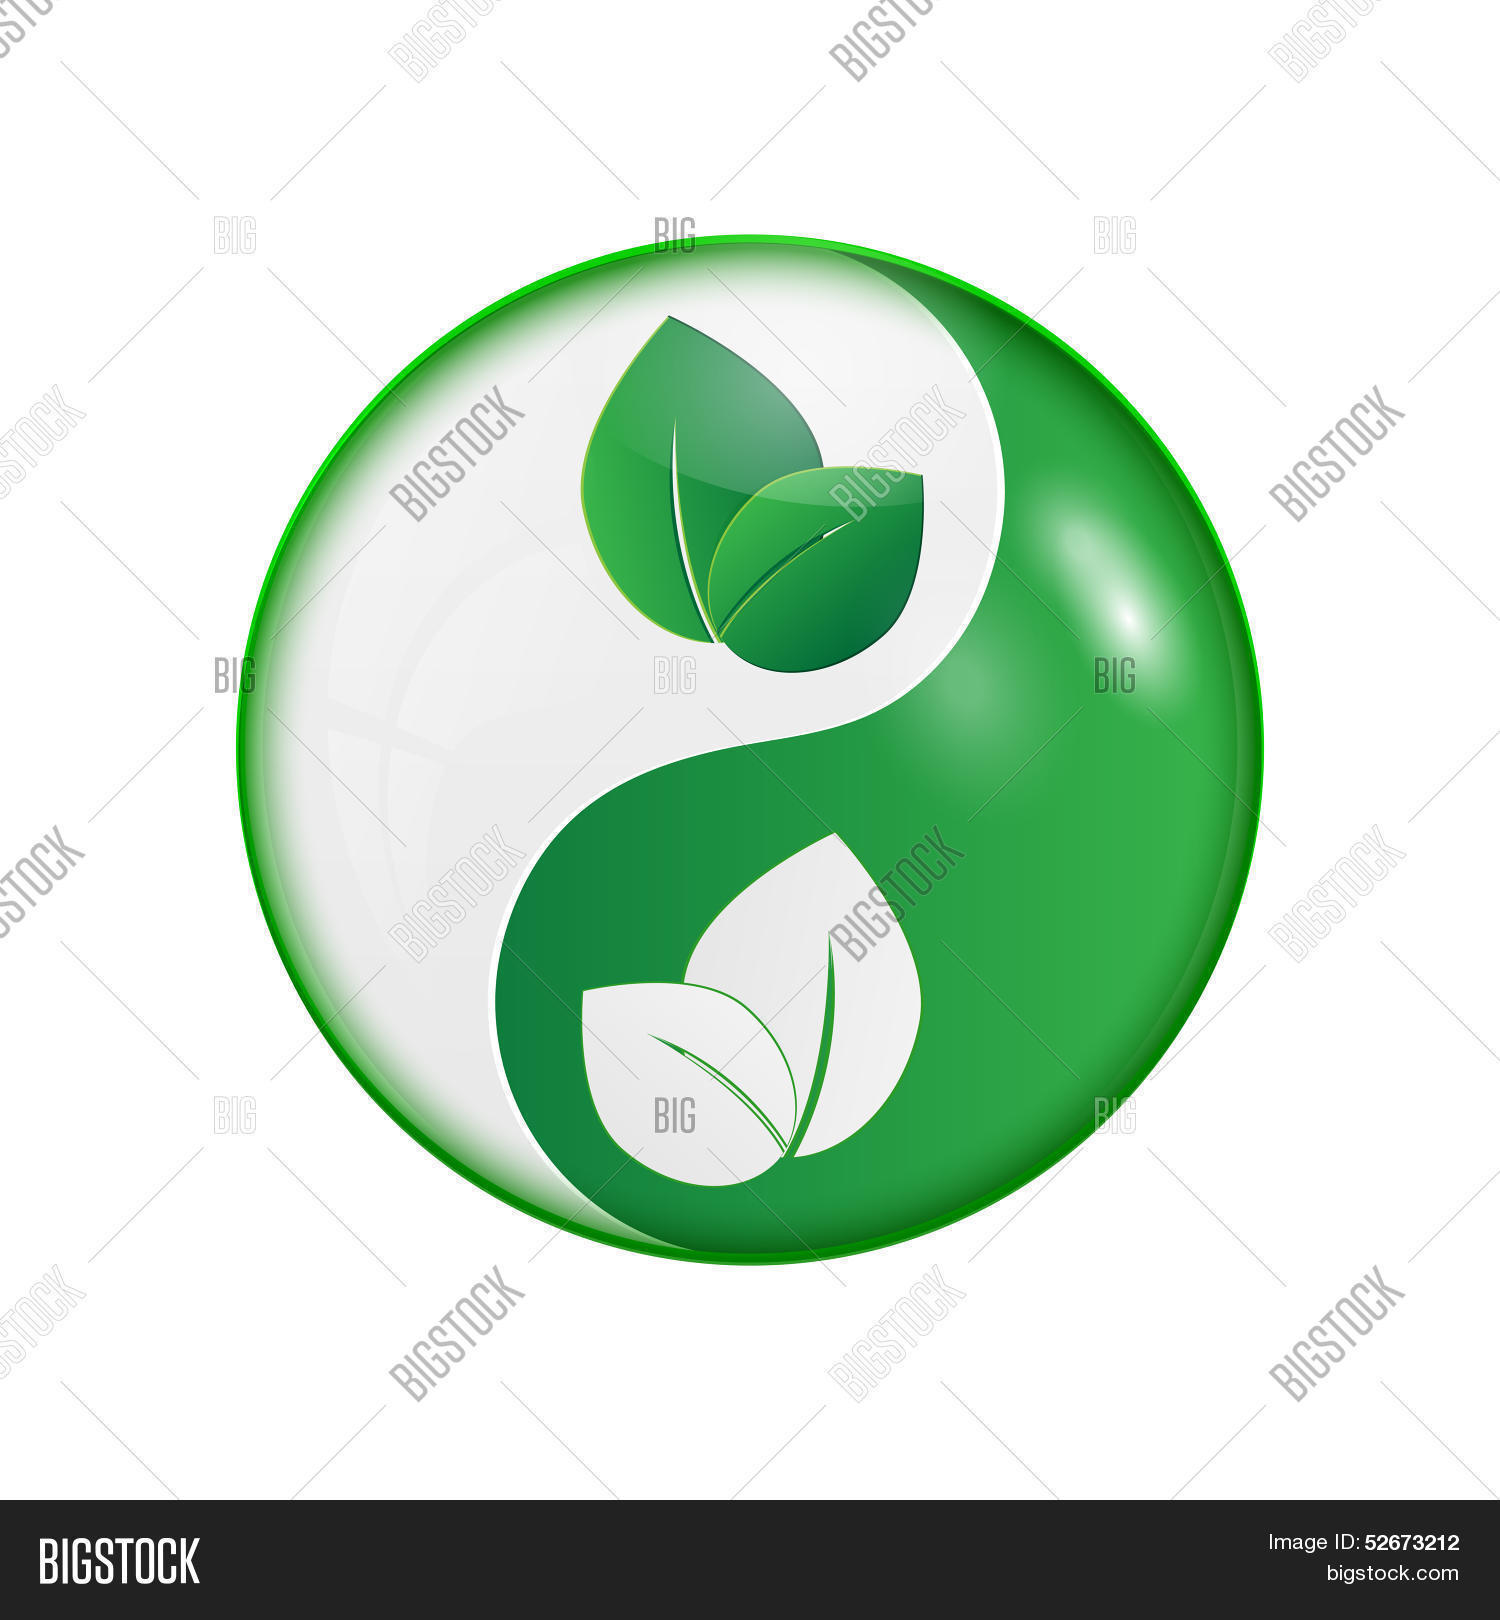 alliance,antipode,attraction,ball,buddhism,china,circle,concord,concordance,contrariety,contrary,contrast,culture,dawning,disk,east,easterly,eastwardly,ecology,feng,feng shui,floral,foliage,globe,gravitation,green,harmony,herb,herbal,icon,illustration,inverse,isolated,japan,leaf,life,living,meditation,nature,opposite,opposition,orient,oriental,plant,round,sapience,shui,sphere,spiritual,tea,union,vector,vegetal,white,wisdom,yang,yin,yin-yang